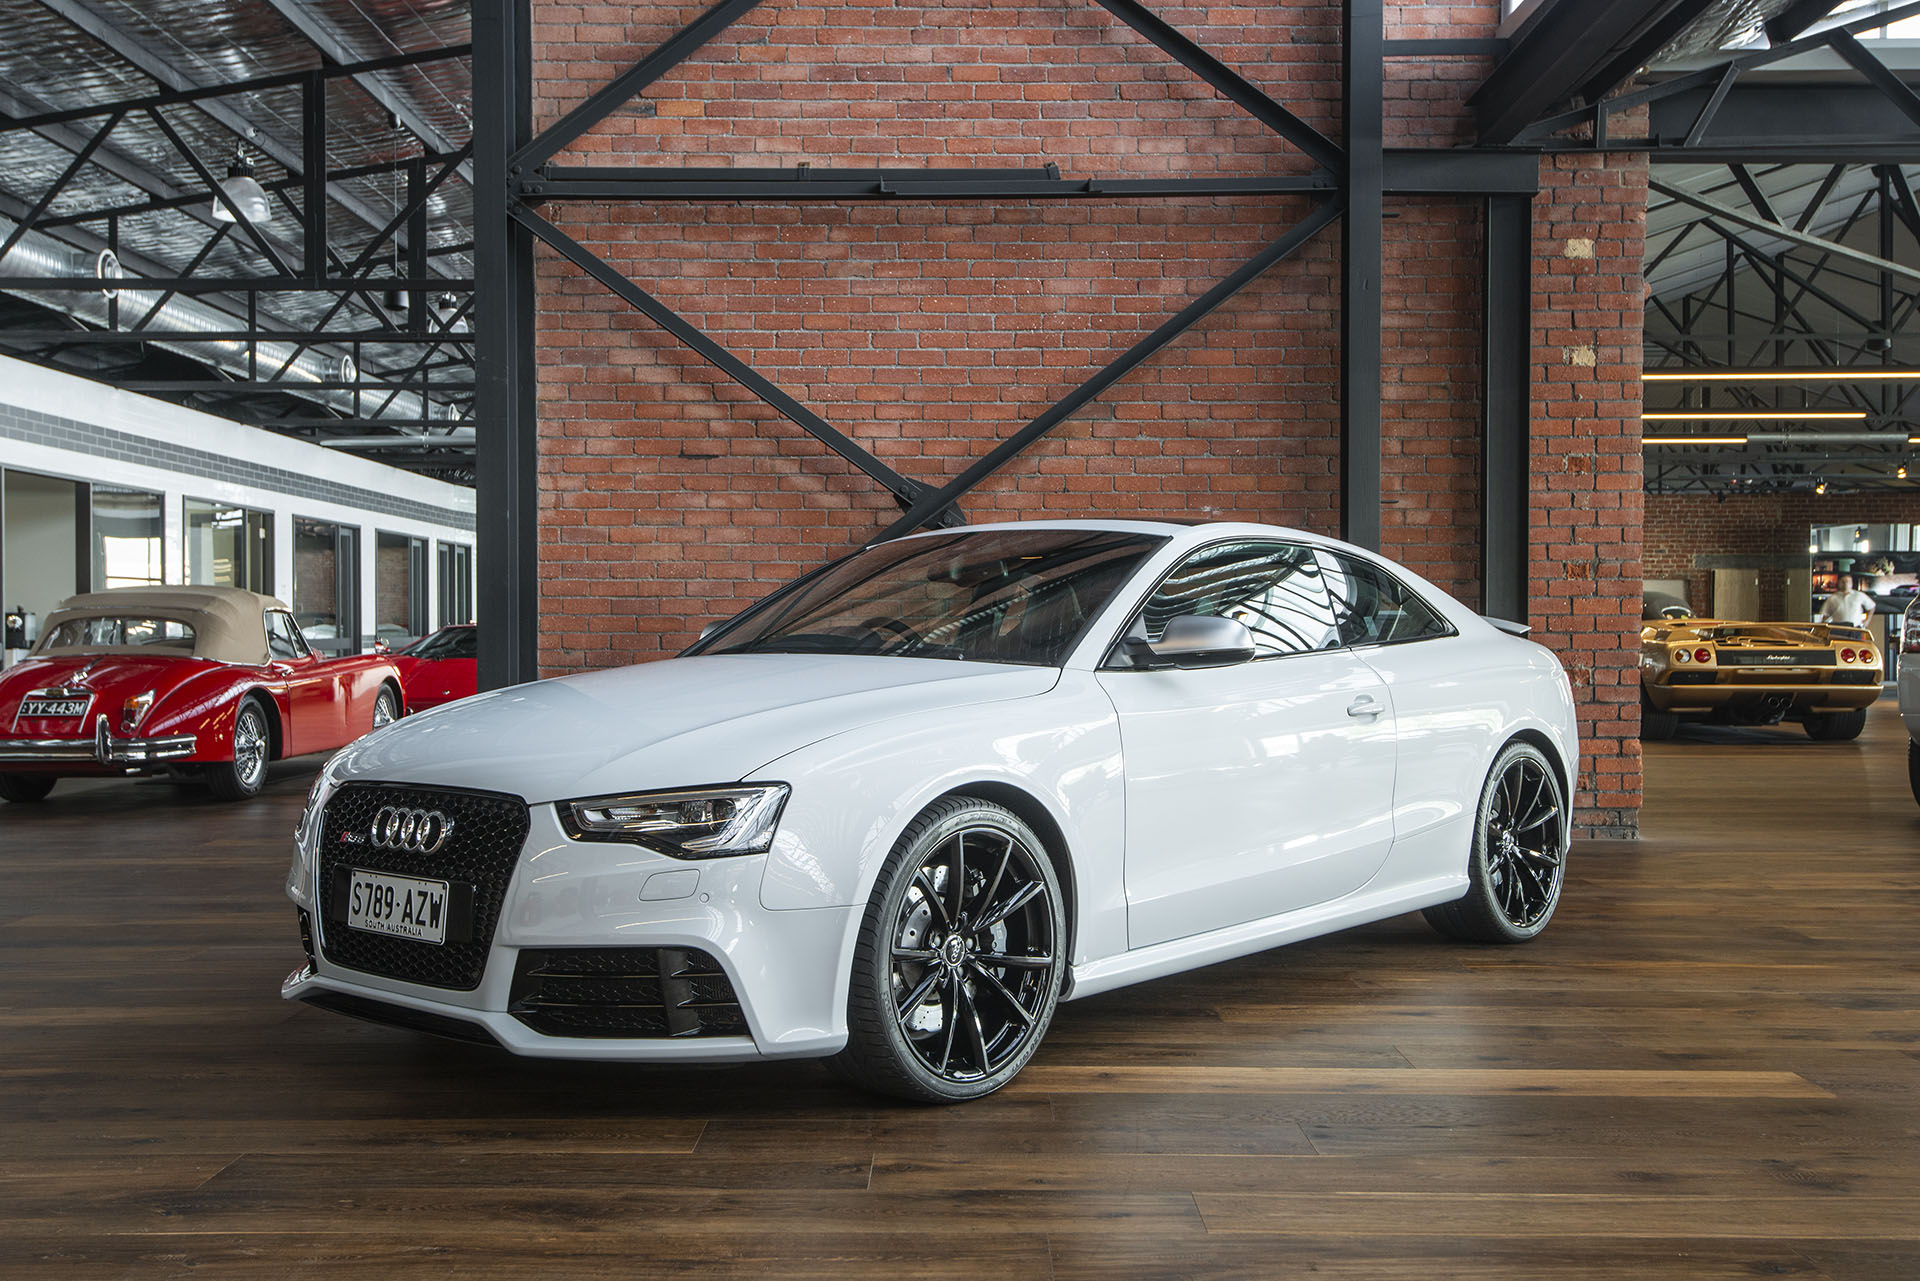 Sports Cars For Sale >> 2013 Audi RS5 8T Coupe (MY14) - Richmonds - Classic and Prestige Cars - Storage and Sales ...